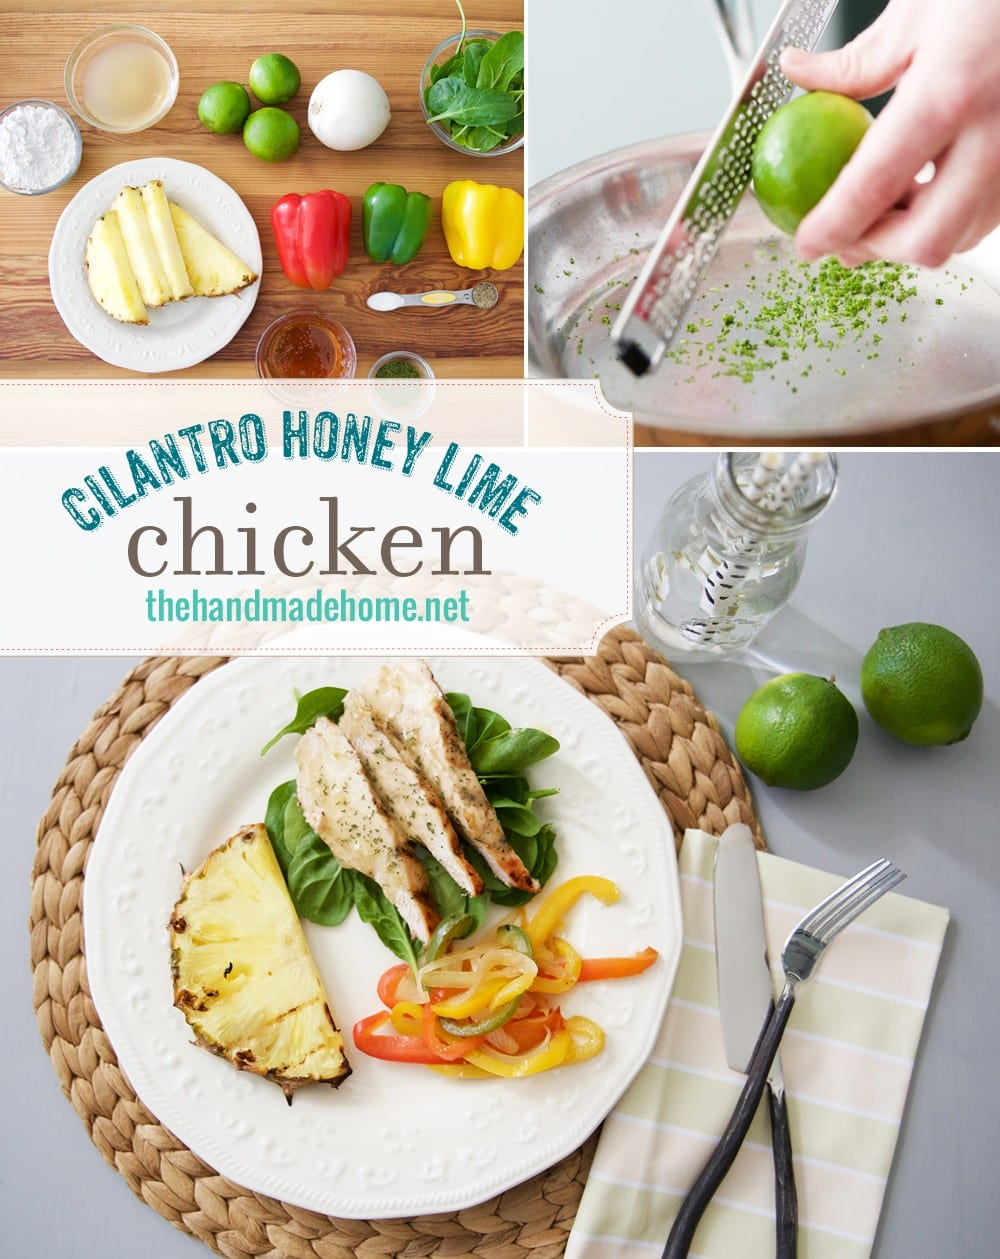 recipe_cilantro_honey_lime_chicken